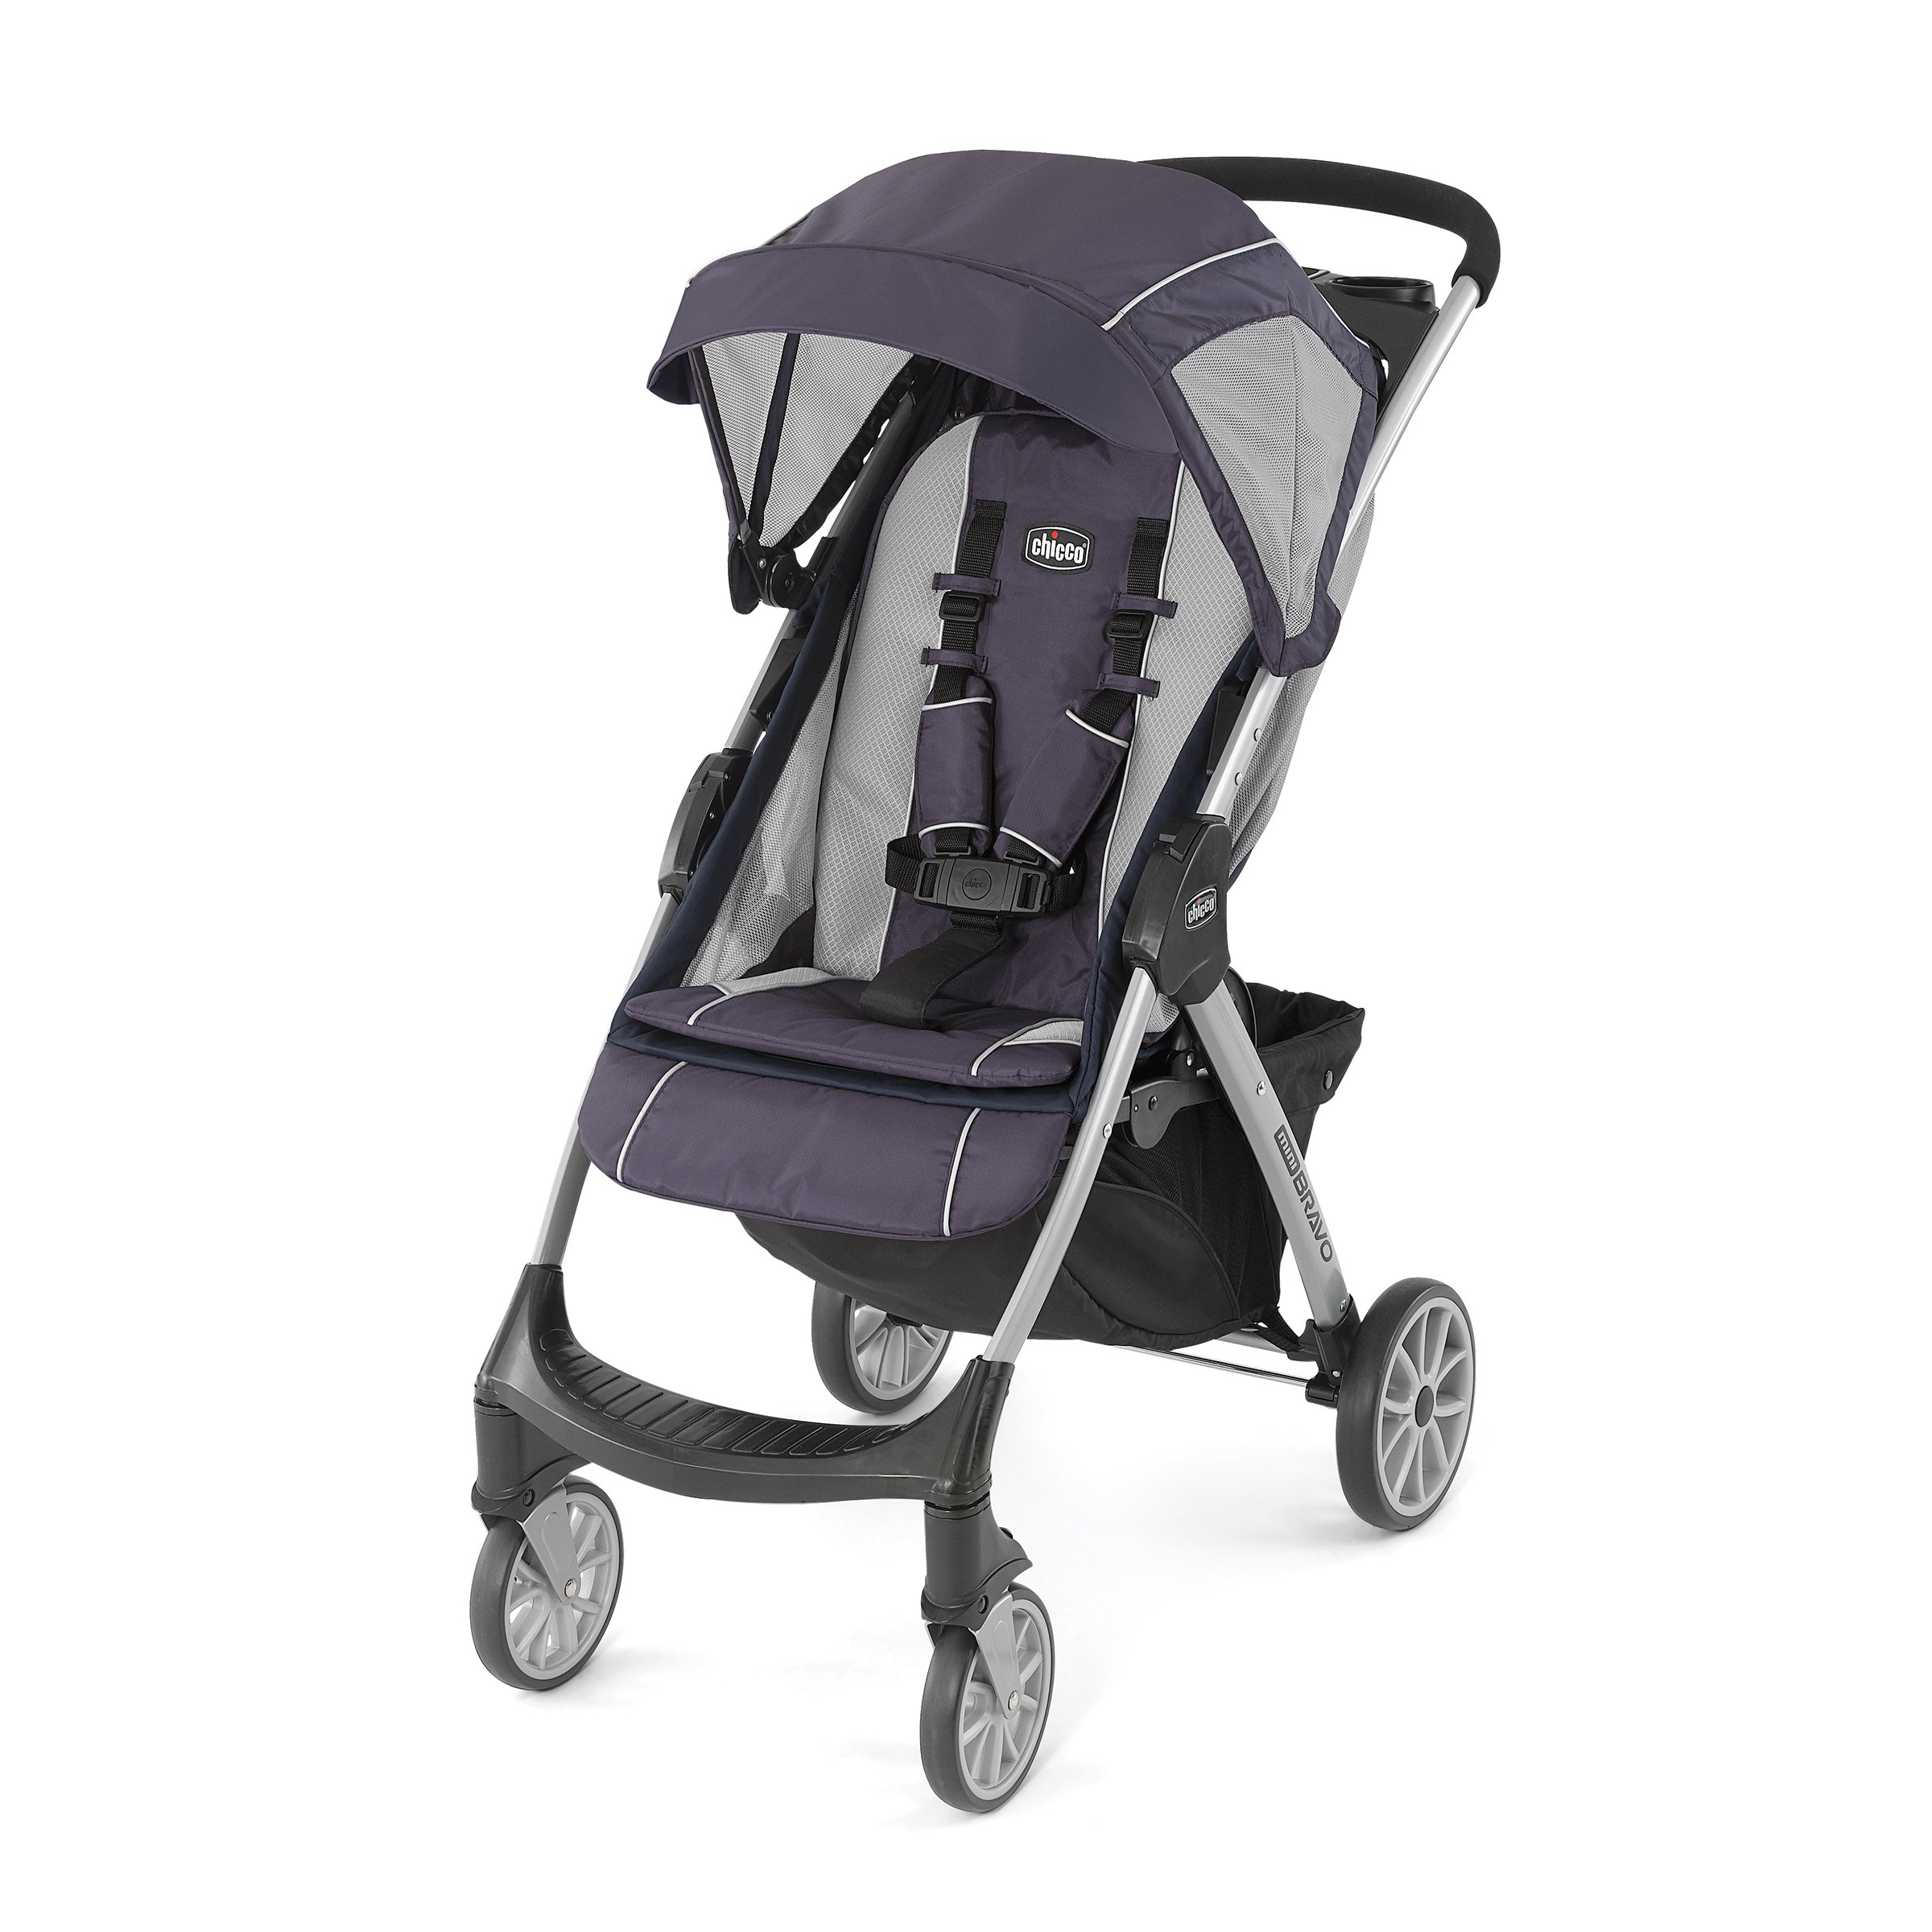 Chicco Mini Bravo Lightweight Stroller, Mulberry by Chicco (Image #1)